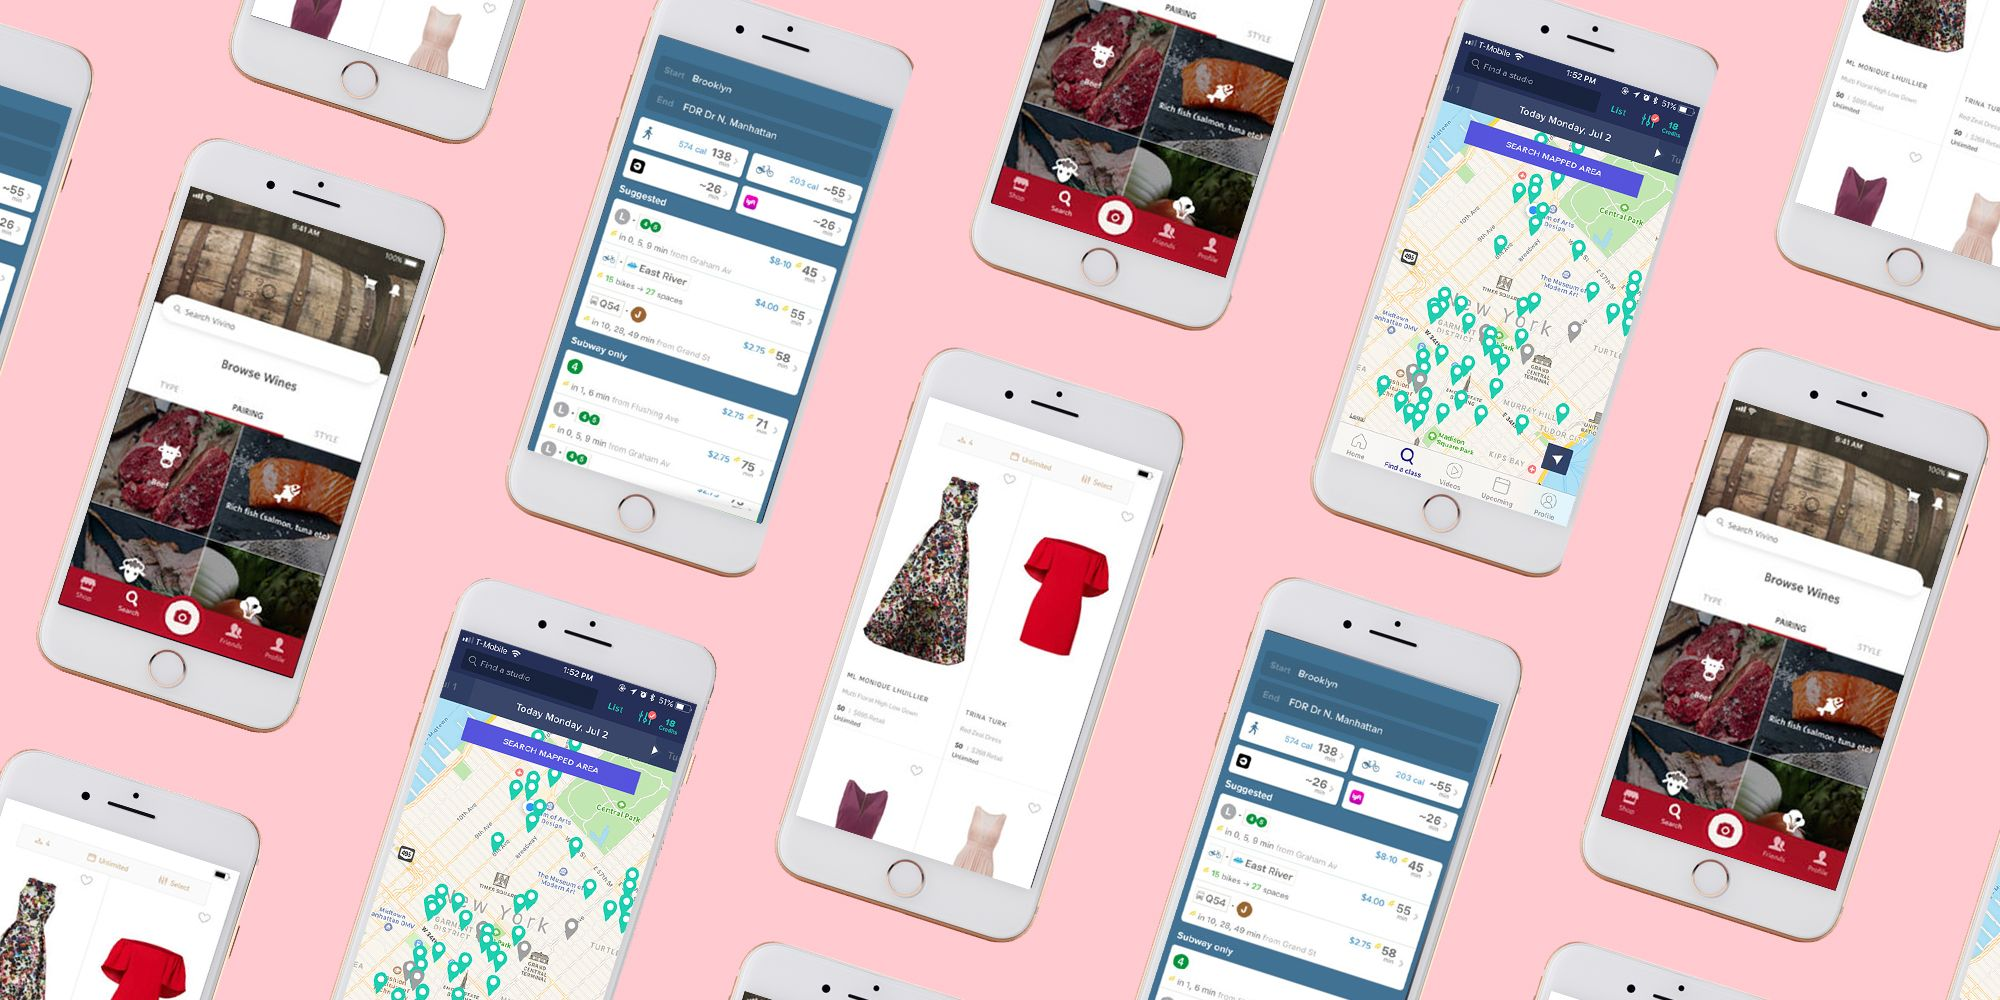 15 Must-Have iPhone Apps That Will Make Your Life 10x Easier